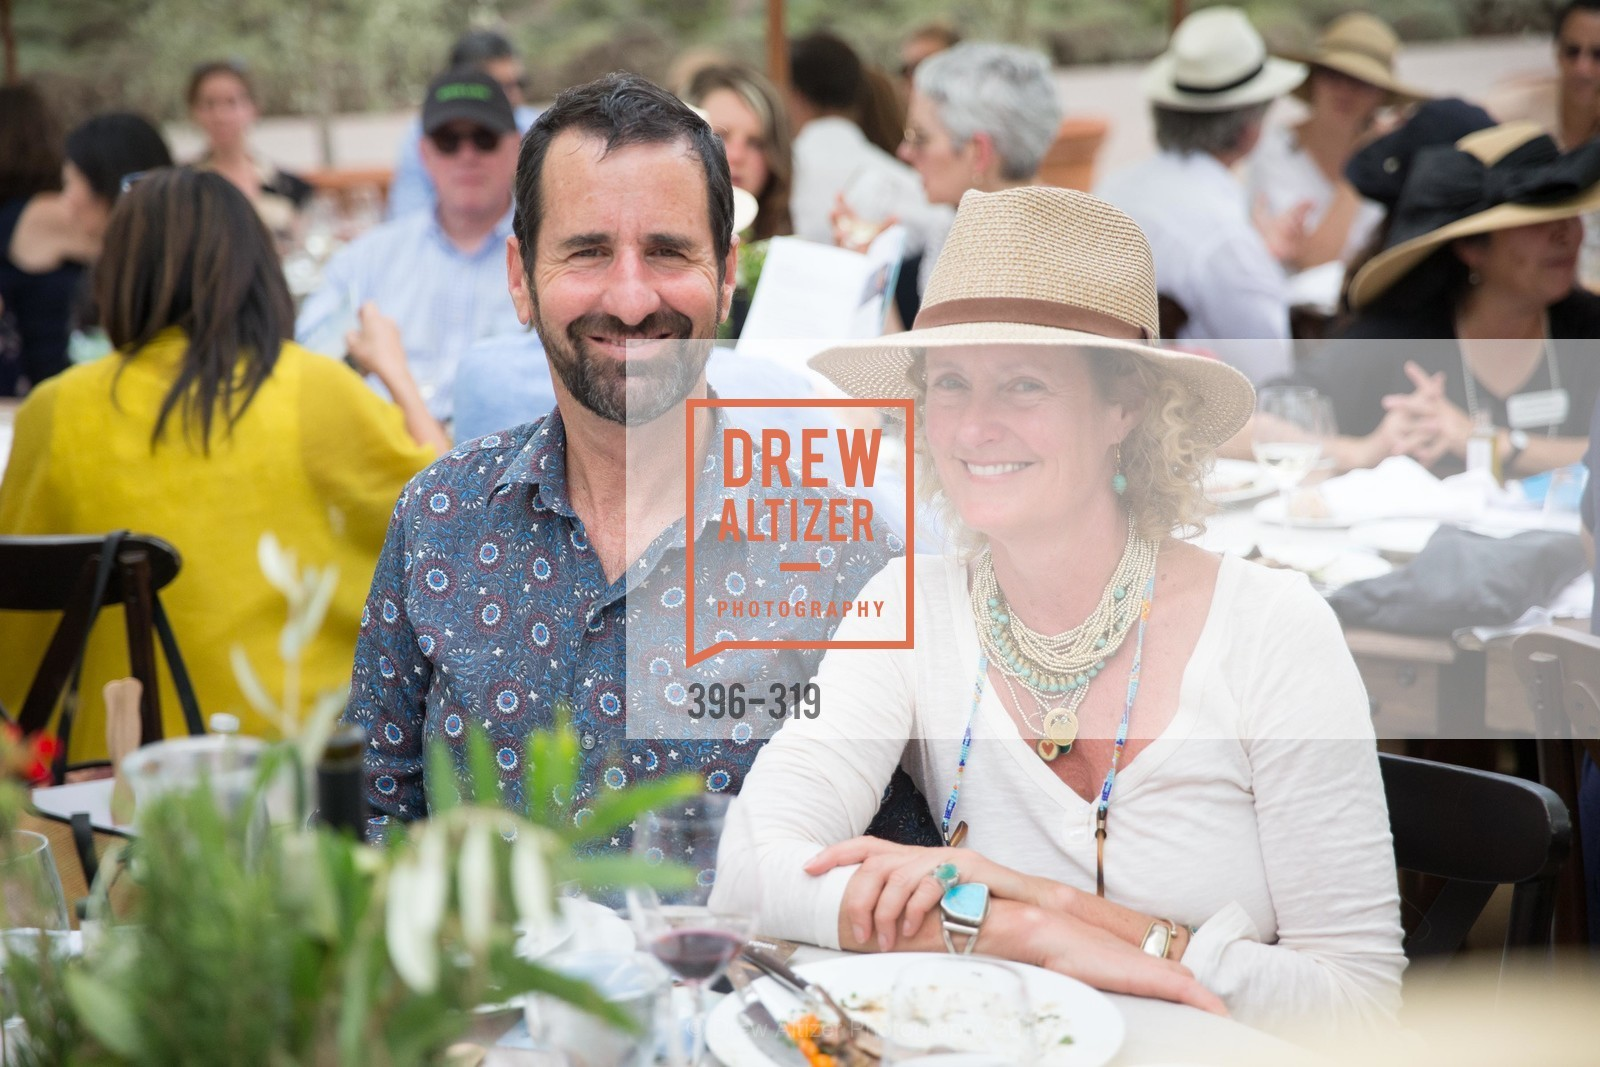 Chris Giacommini, Kathy Maxwell, Fall for Art: ODC at McEvoy Ranch, McEvoy Ranch. 5935 Red Hill Road, September 27th, 2015,Drew Altizer, Drew Altizer Photography, full-service agency, private events, San Francisco photographer, photographer california